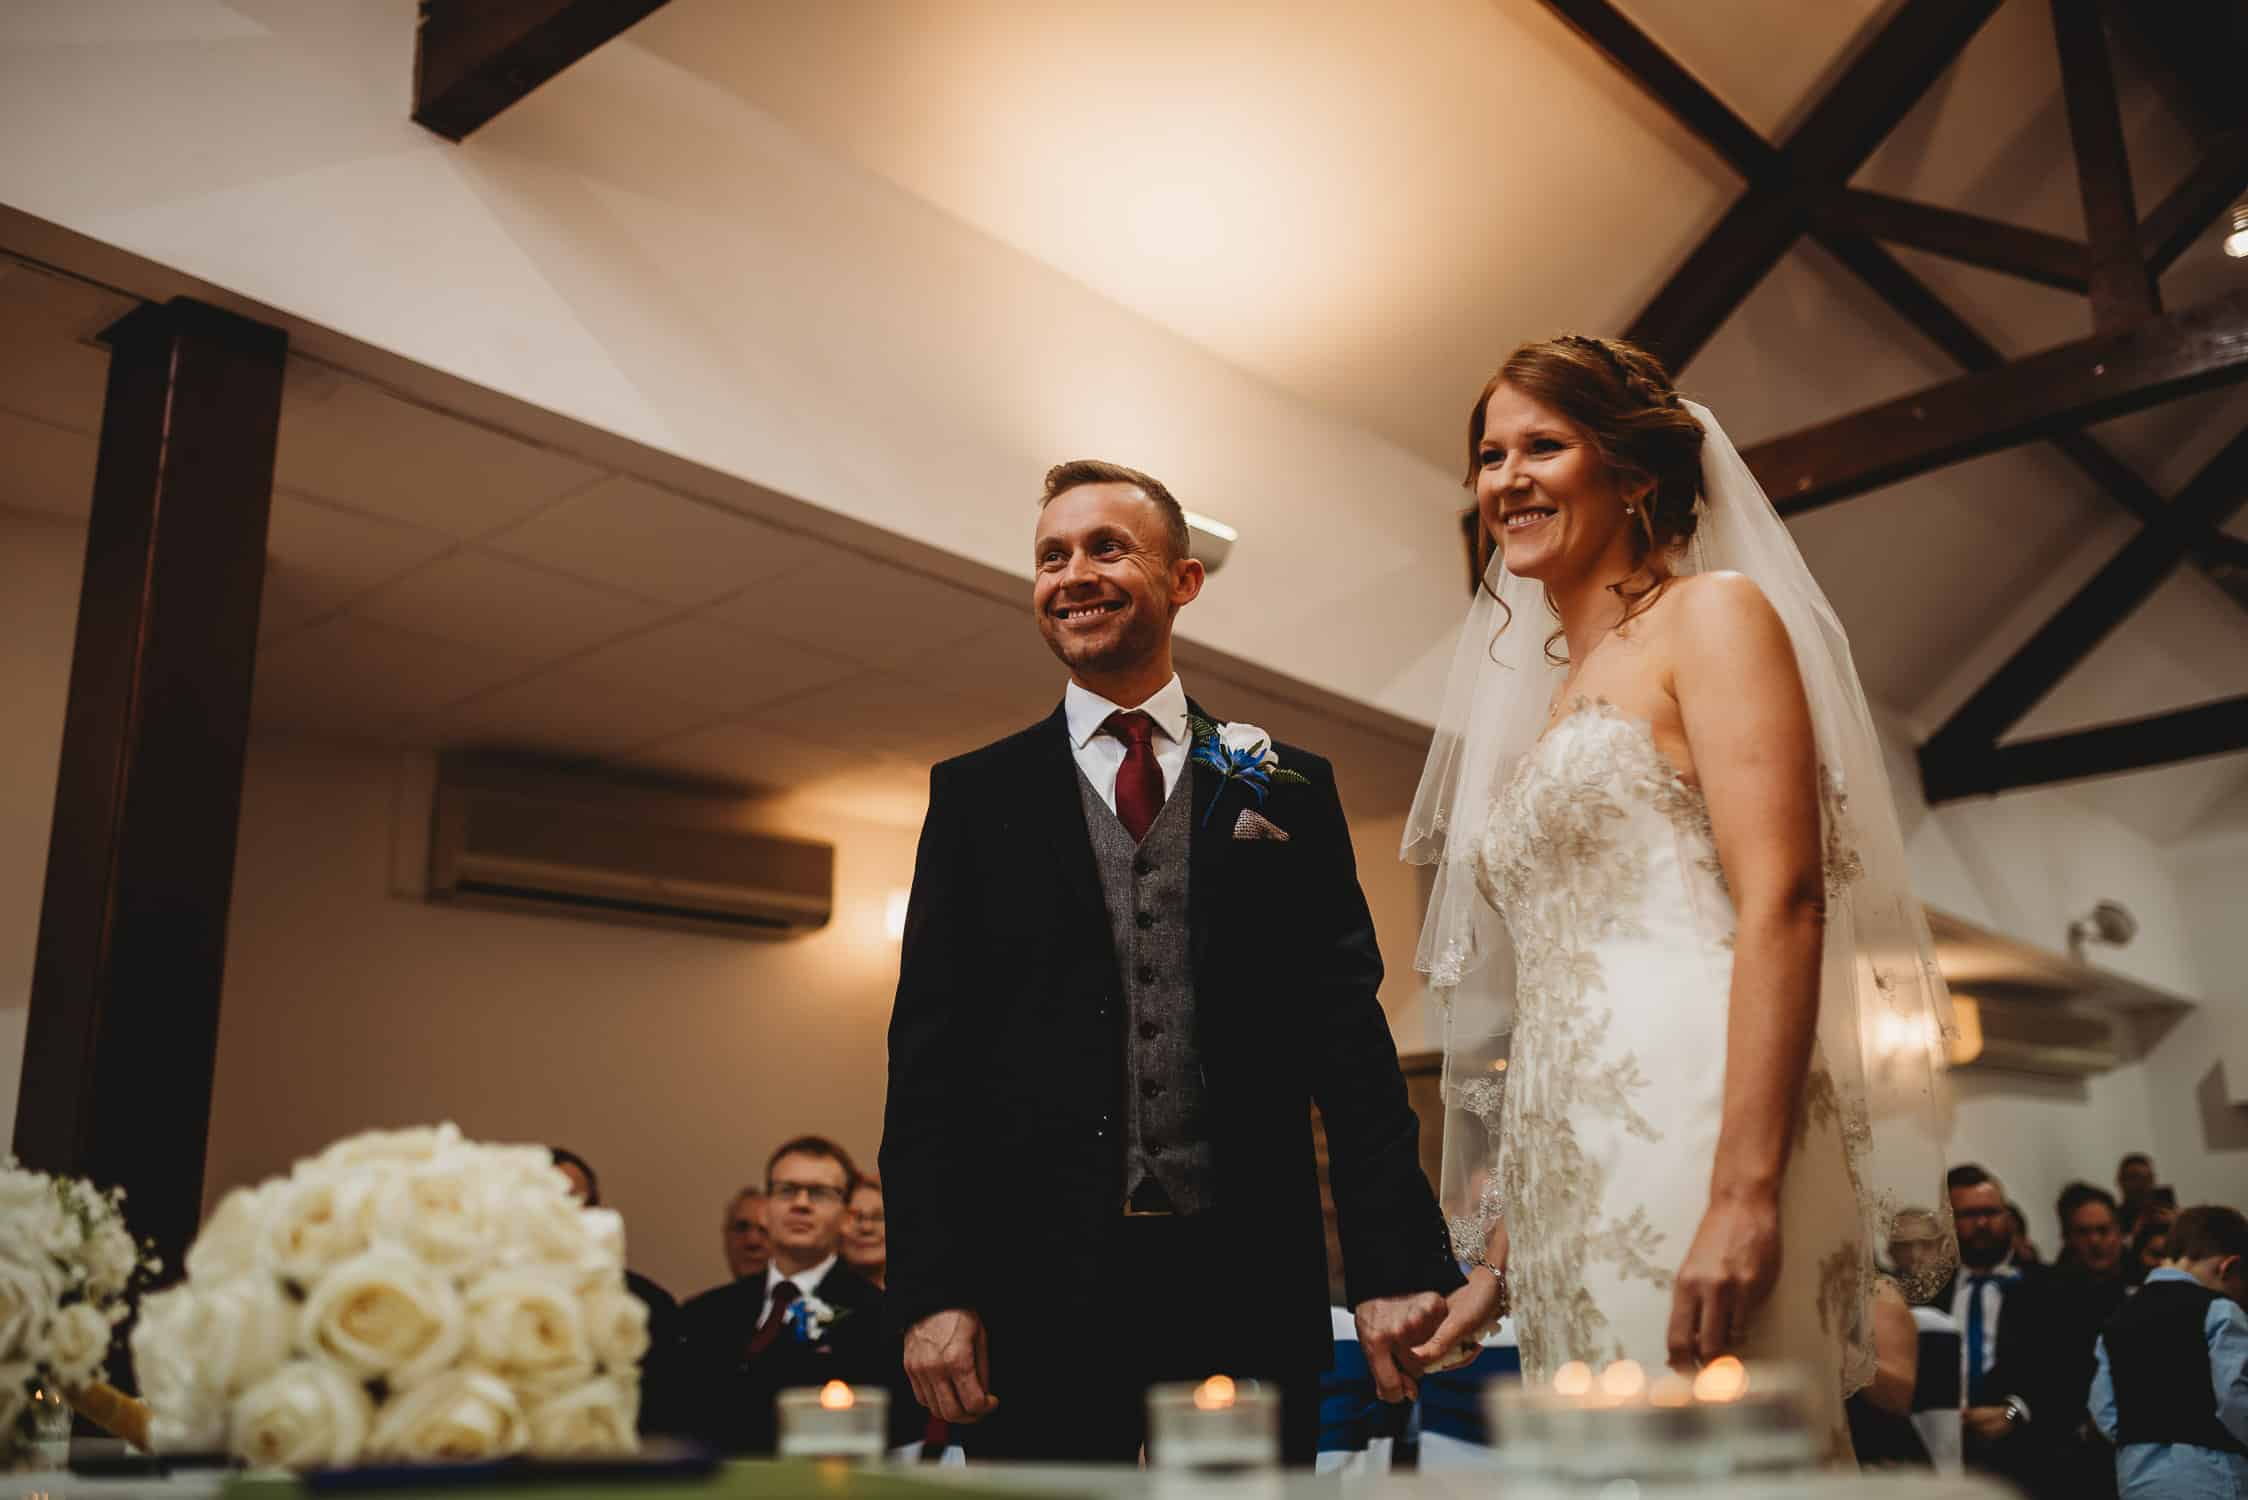 bride and groom smiling at the registrar during their wedding ceremony at Stirk House in Lancashire